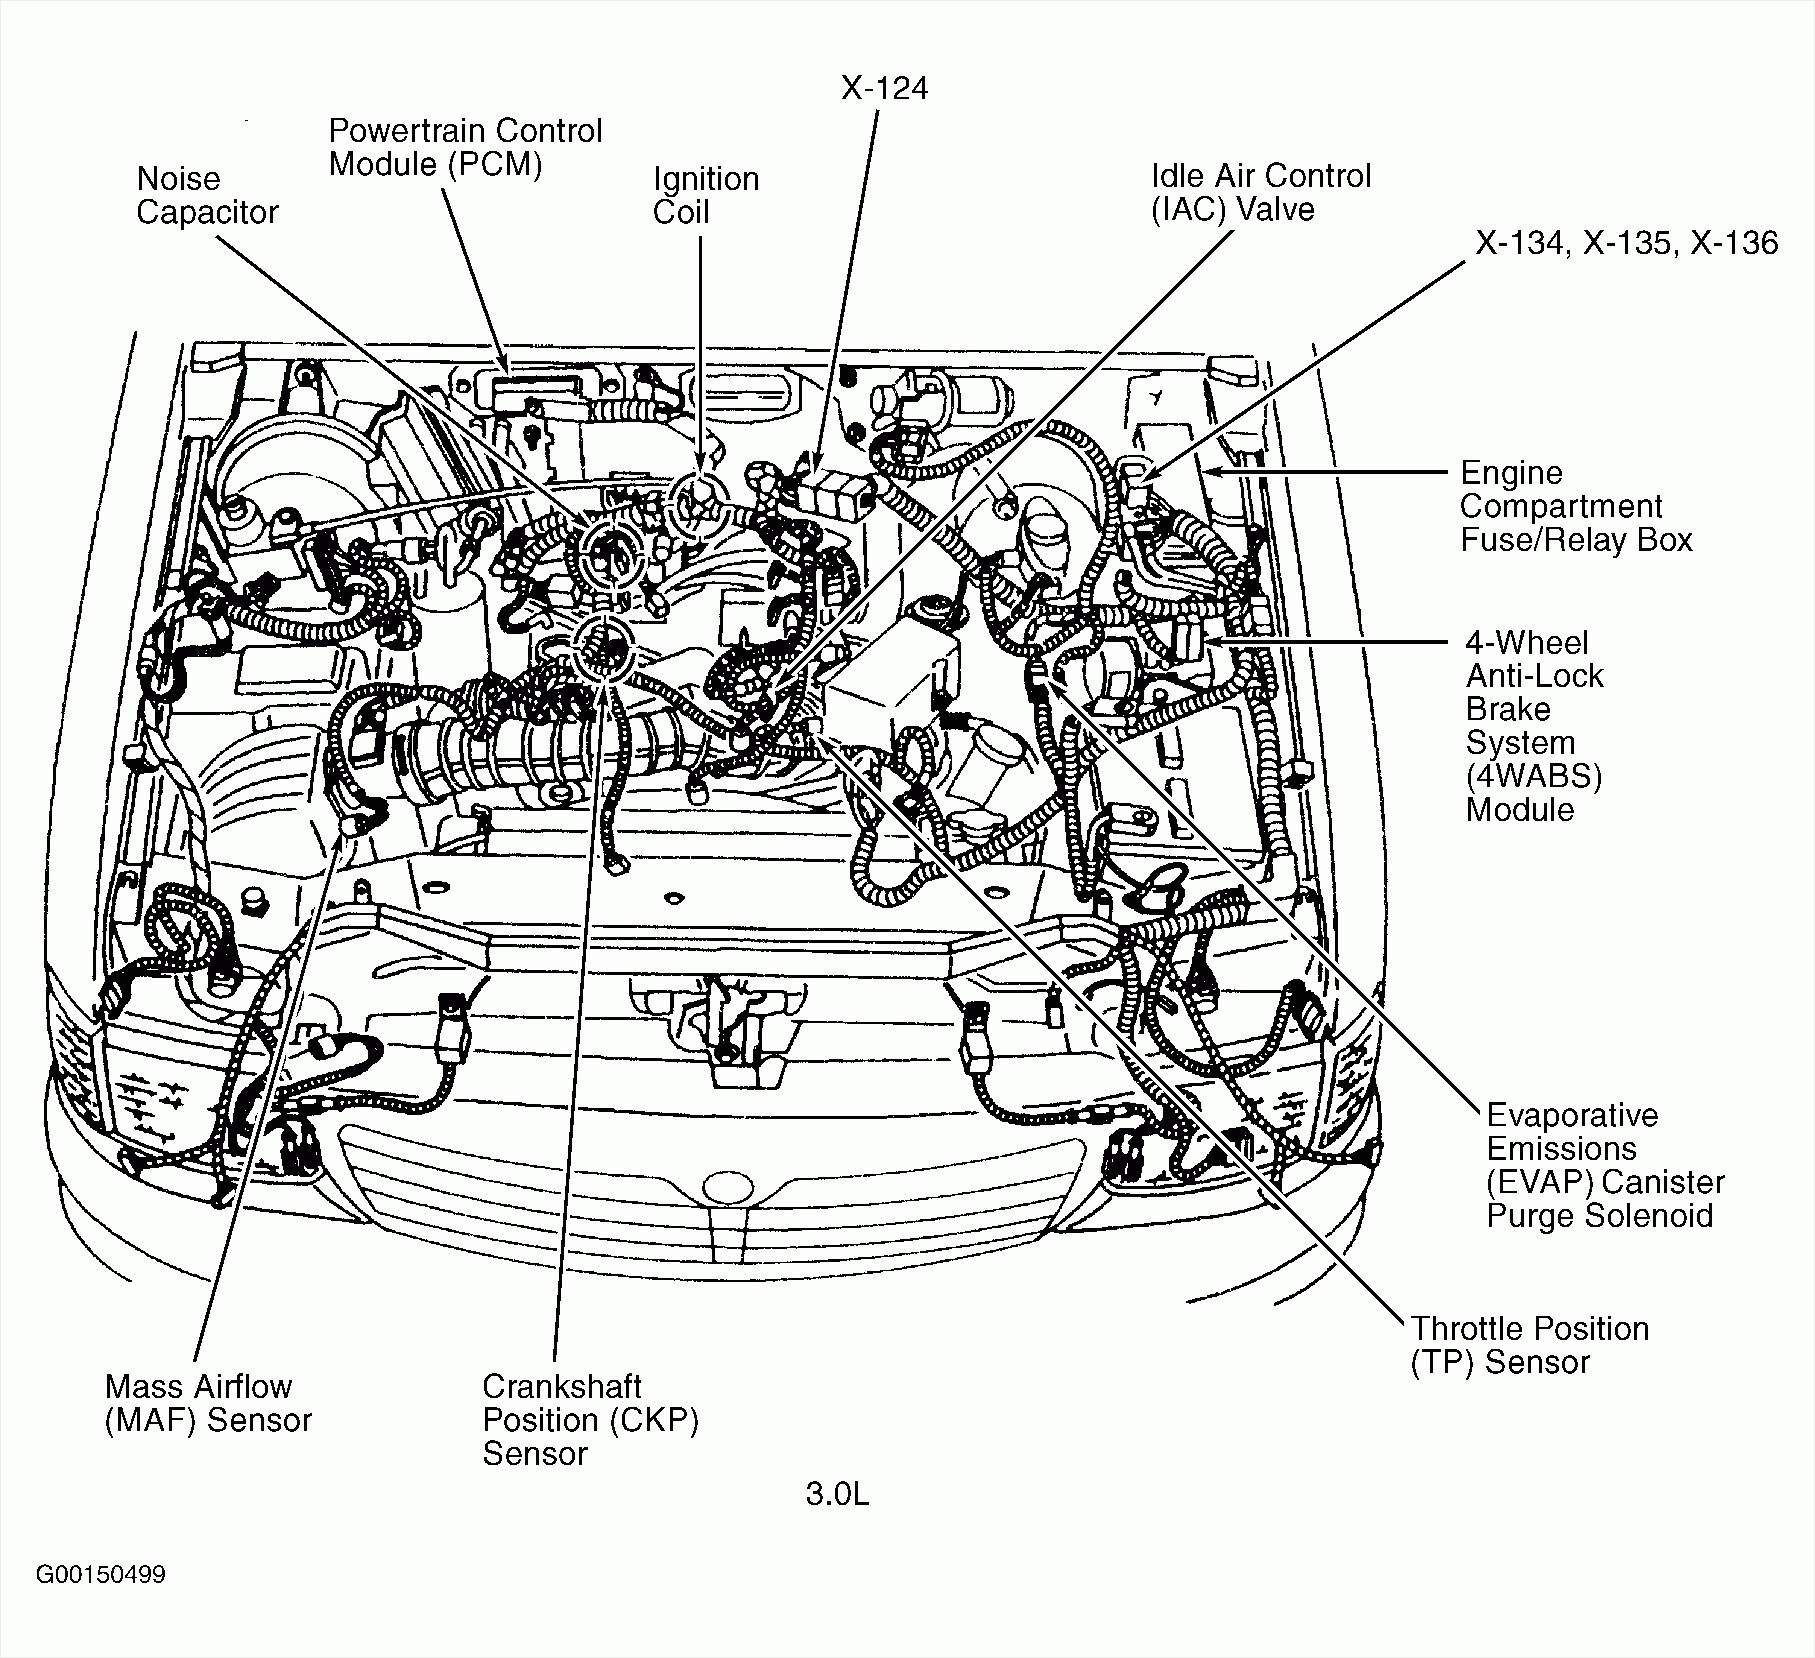 1995 Mustang Engine Diagram List Of Schematic Circuit Wiring 2004 3 8 Data U2022 Rh 144 202 108 125